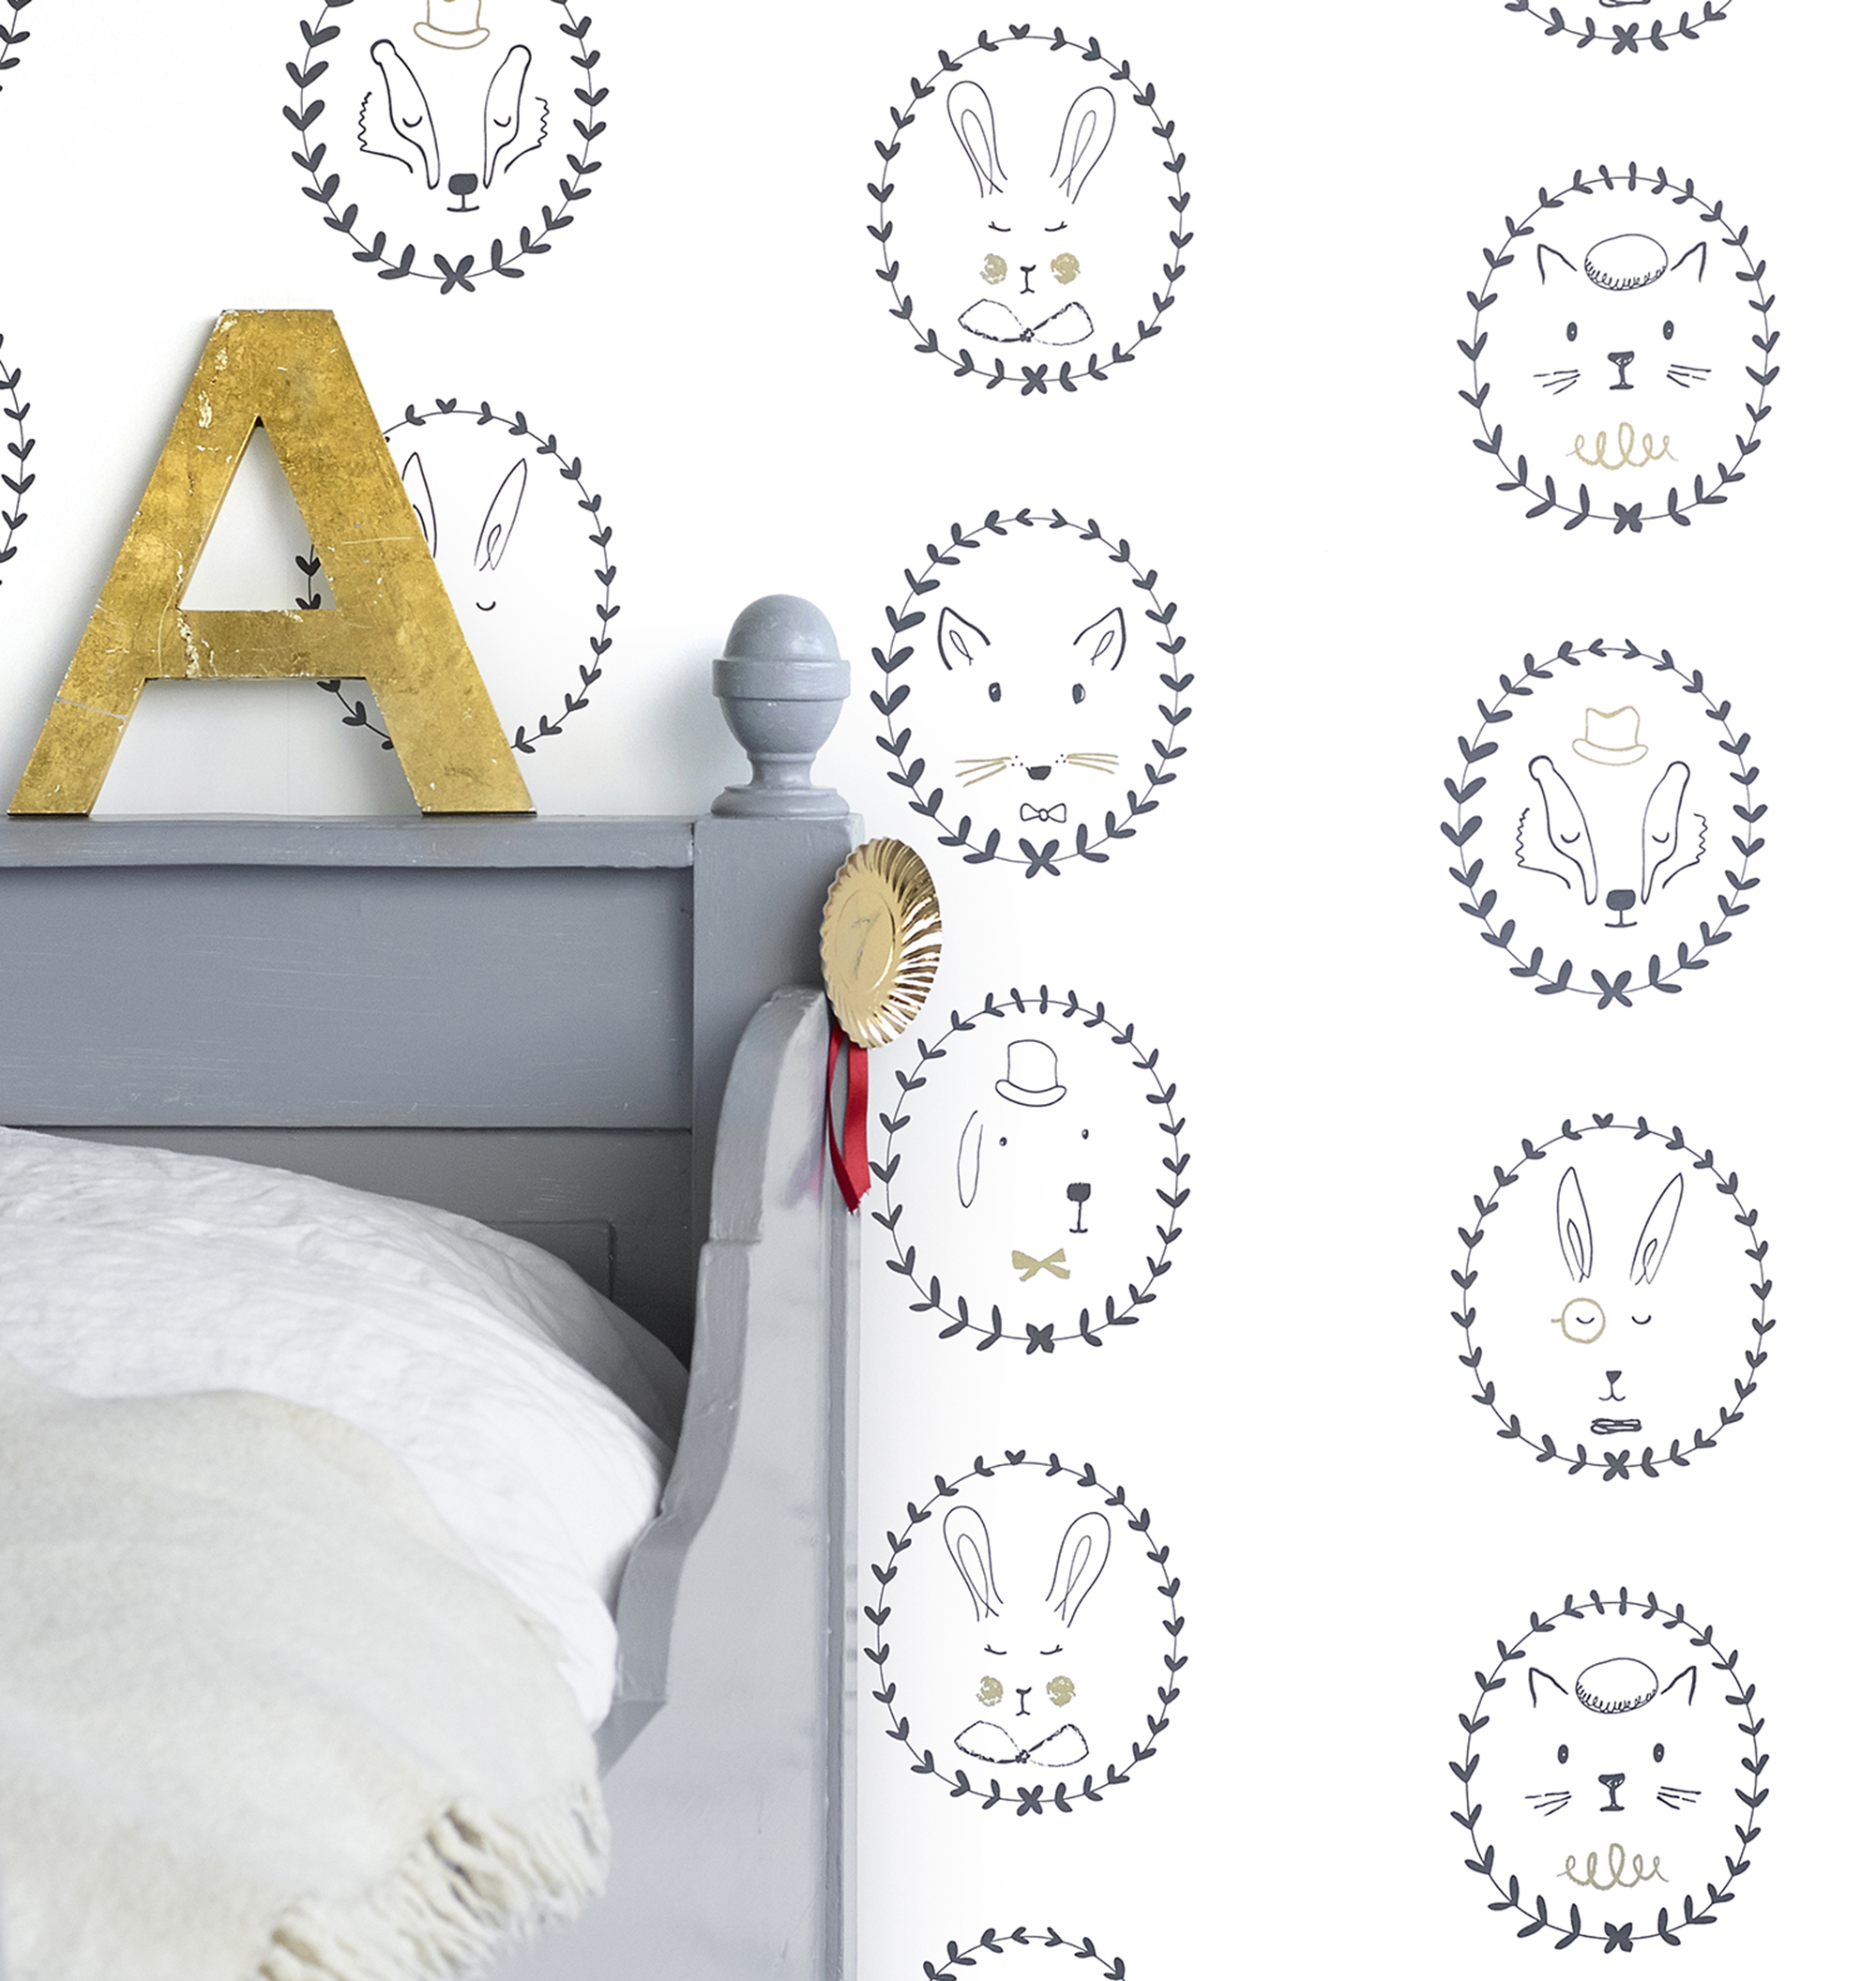 Tremendous Fun And Funky Wallpapers For Kids Rooms Download Free Architecture Designs Grimeyleaguecom